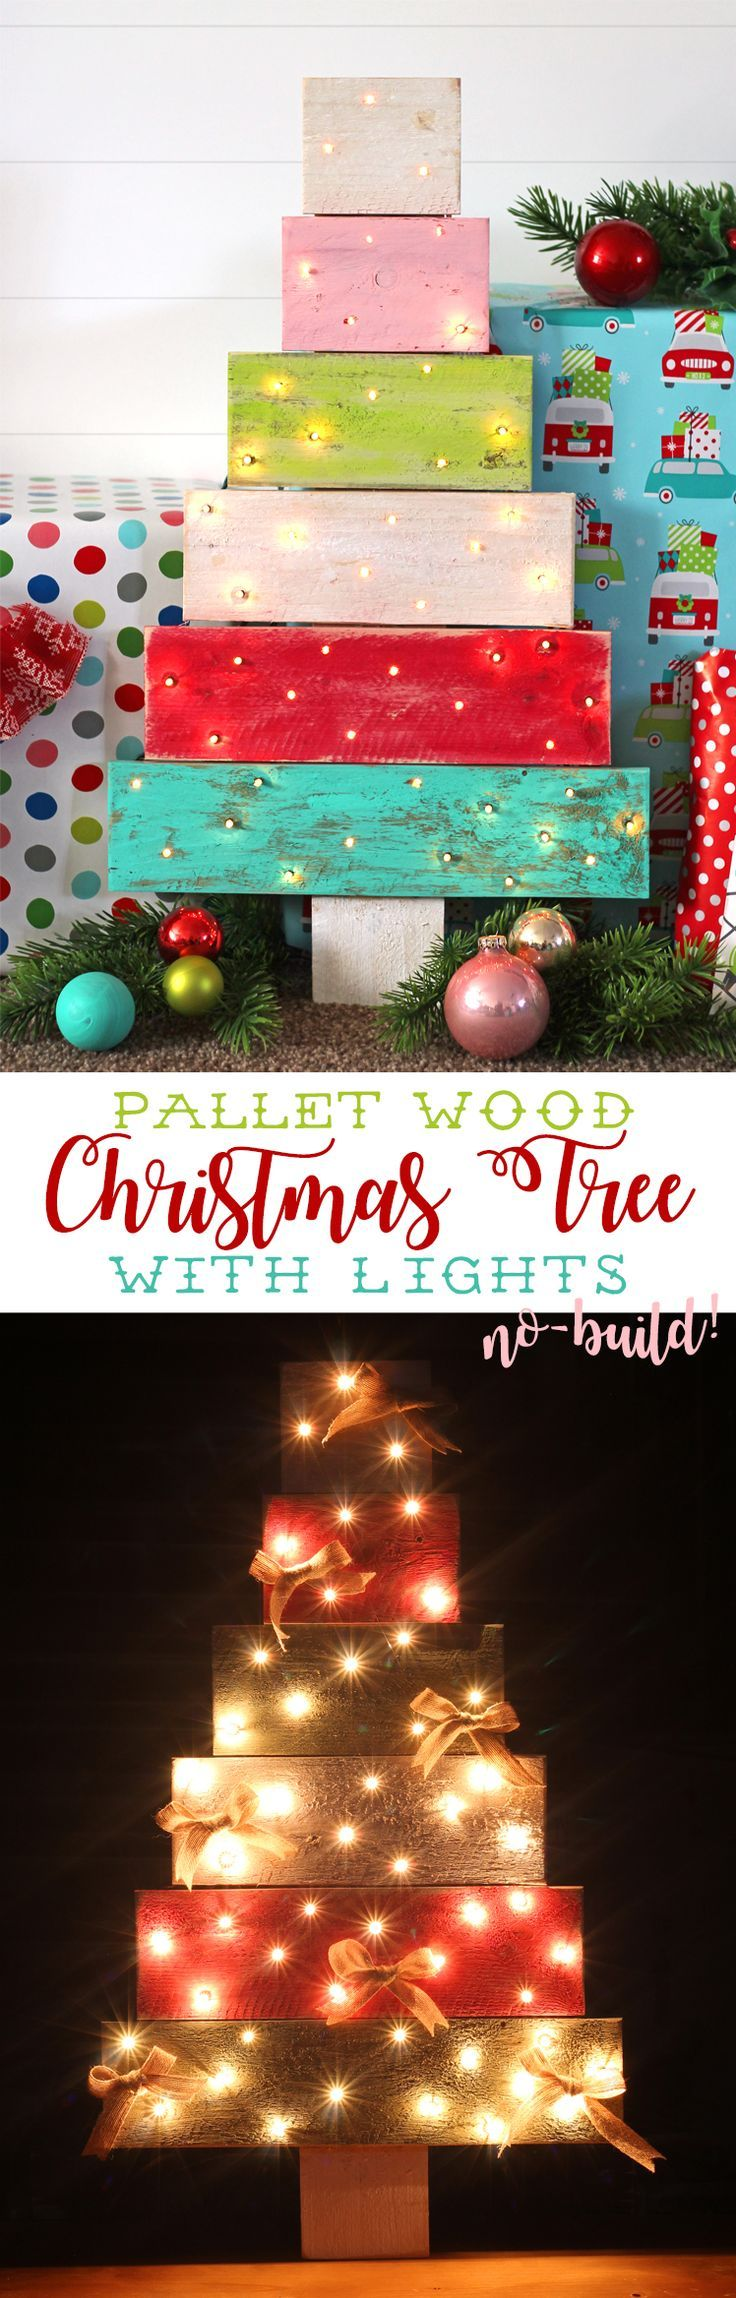 Make a pallet wood Christmas tree with lights without having to build it from scratch! Hurray! Such a cute DIY Christmas decoration.